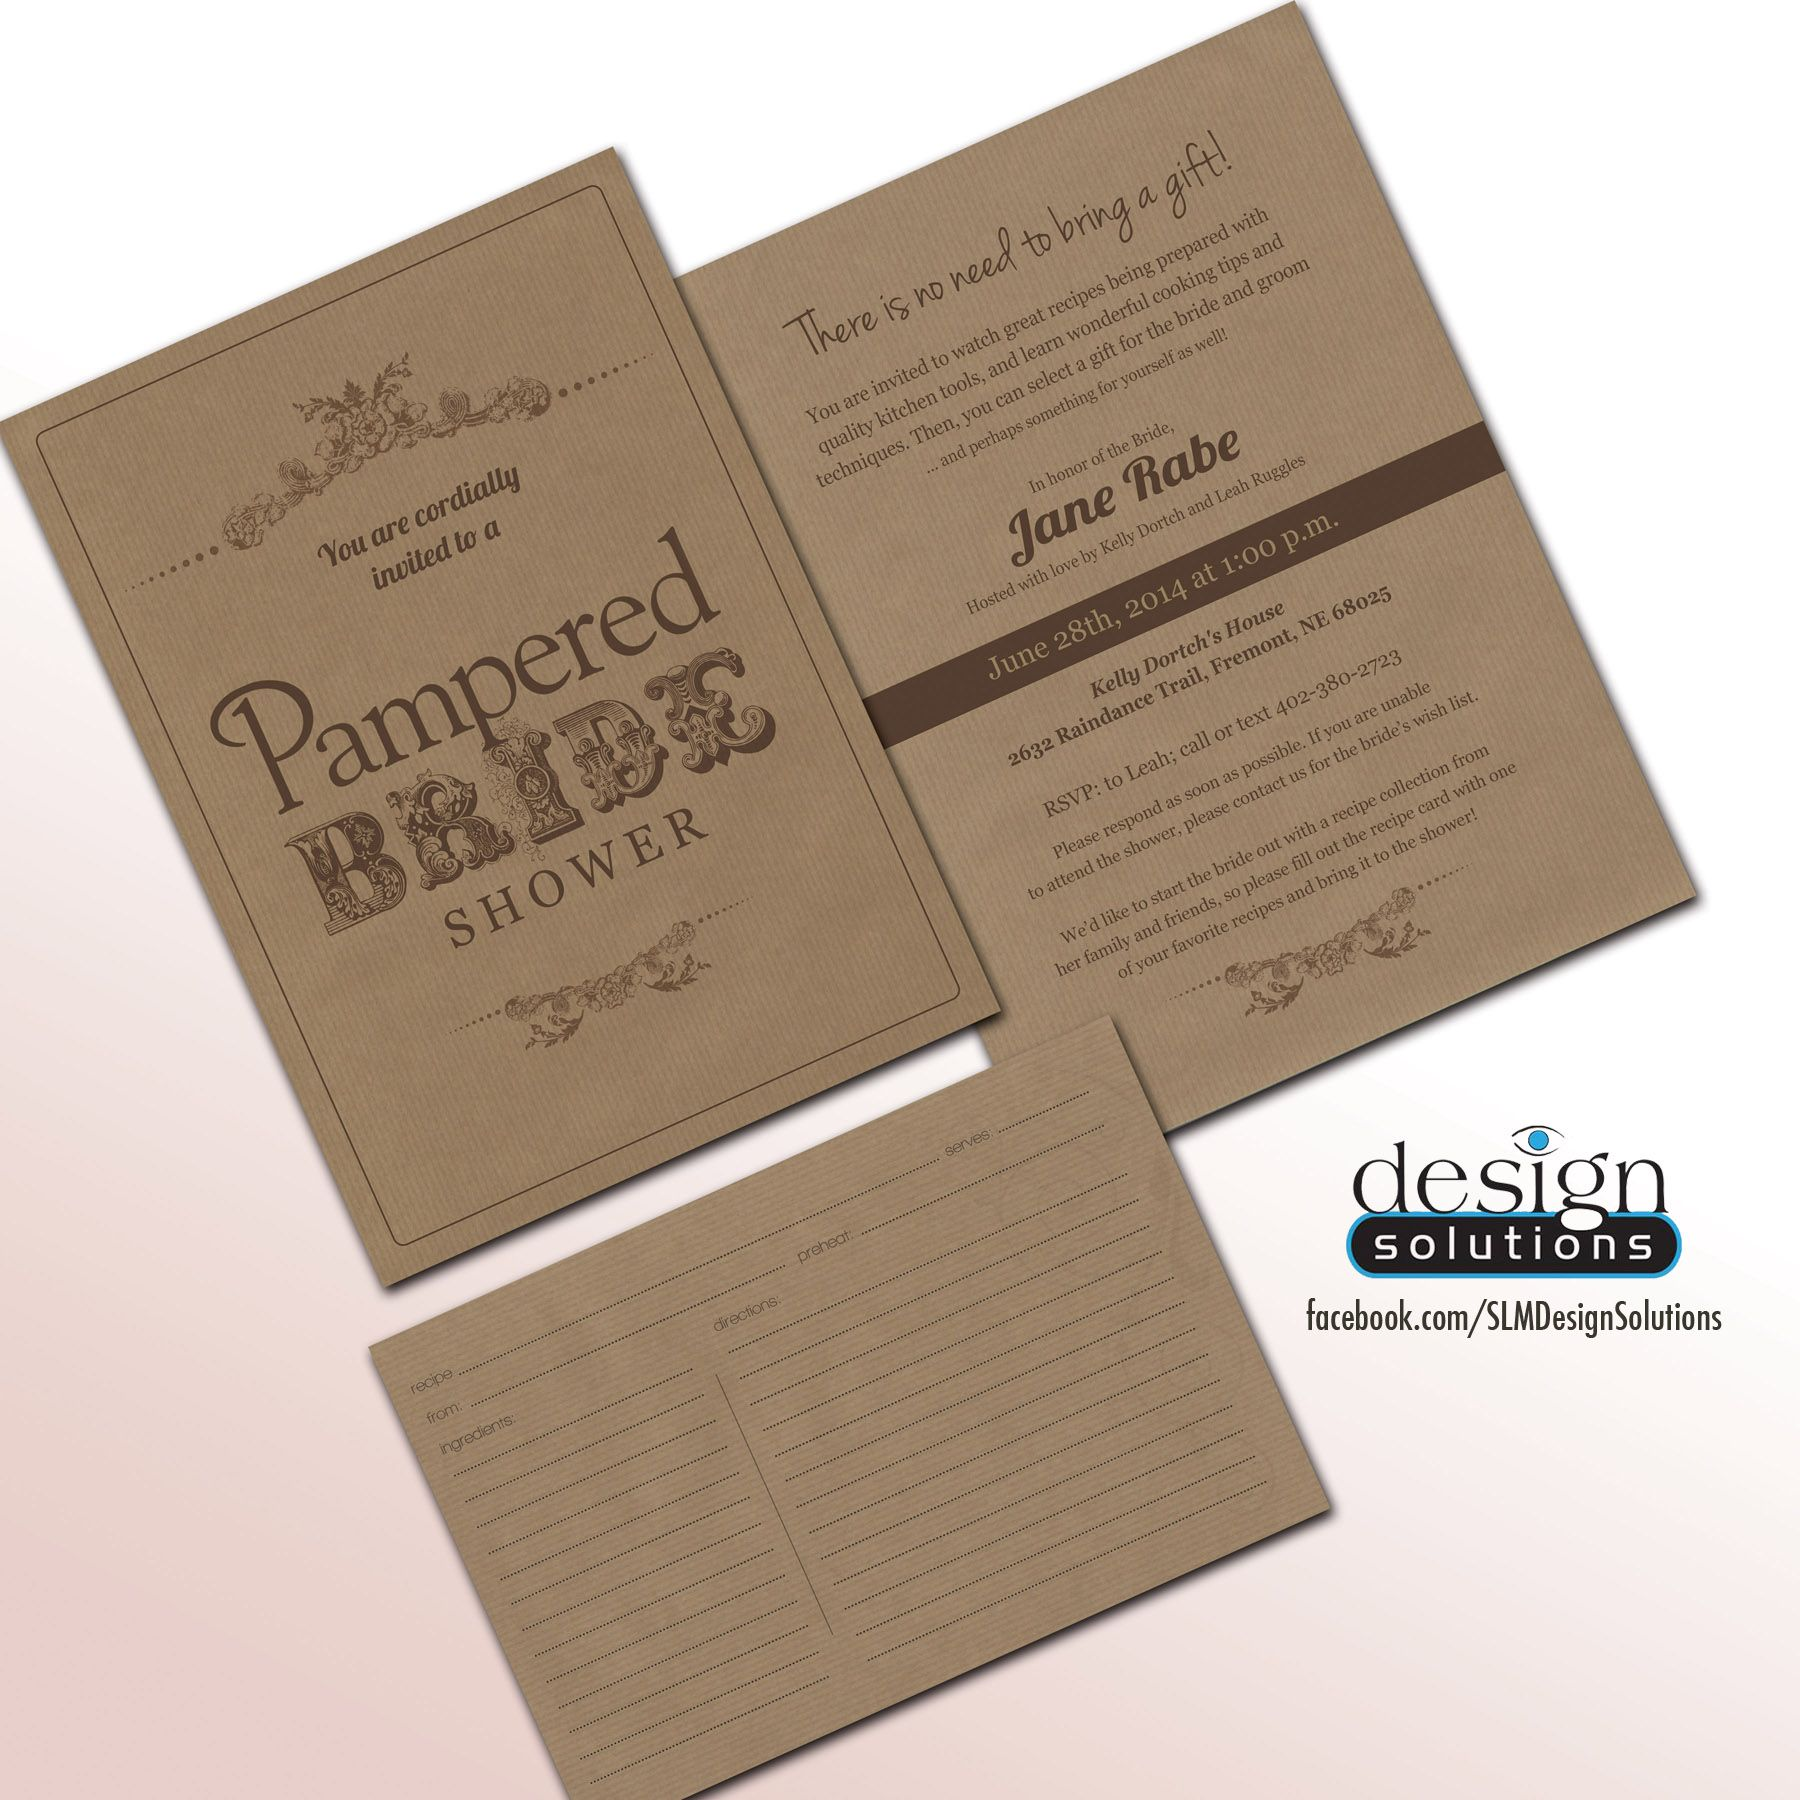 a86682b69d3e Unique Pampered Chef Bridal Shower Invitations with Recipe Card. Custom  designs and more affordable then DYI websites. Like on - FB  SLMDesignSolutions ...